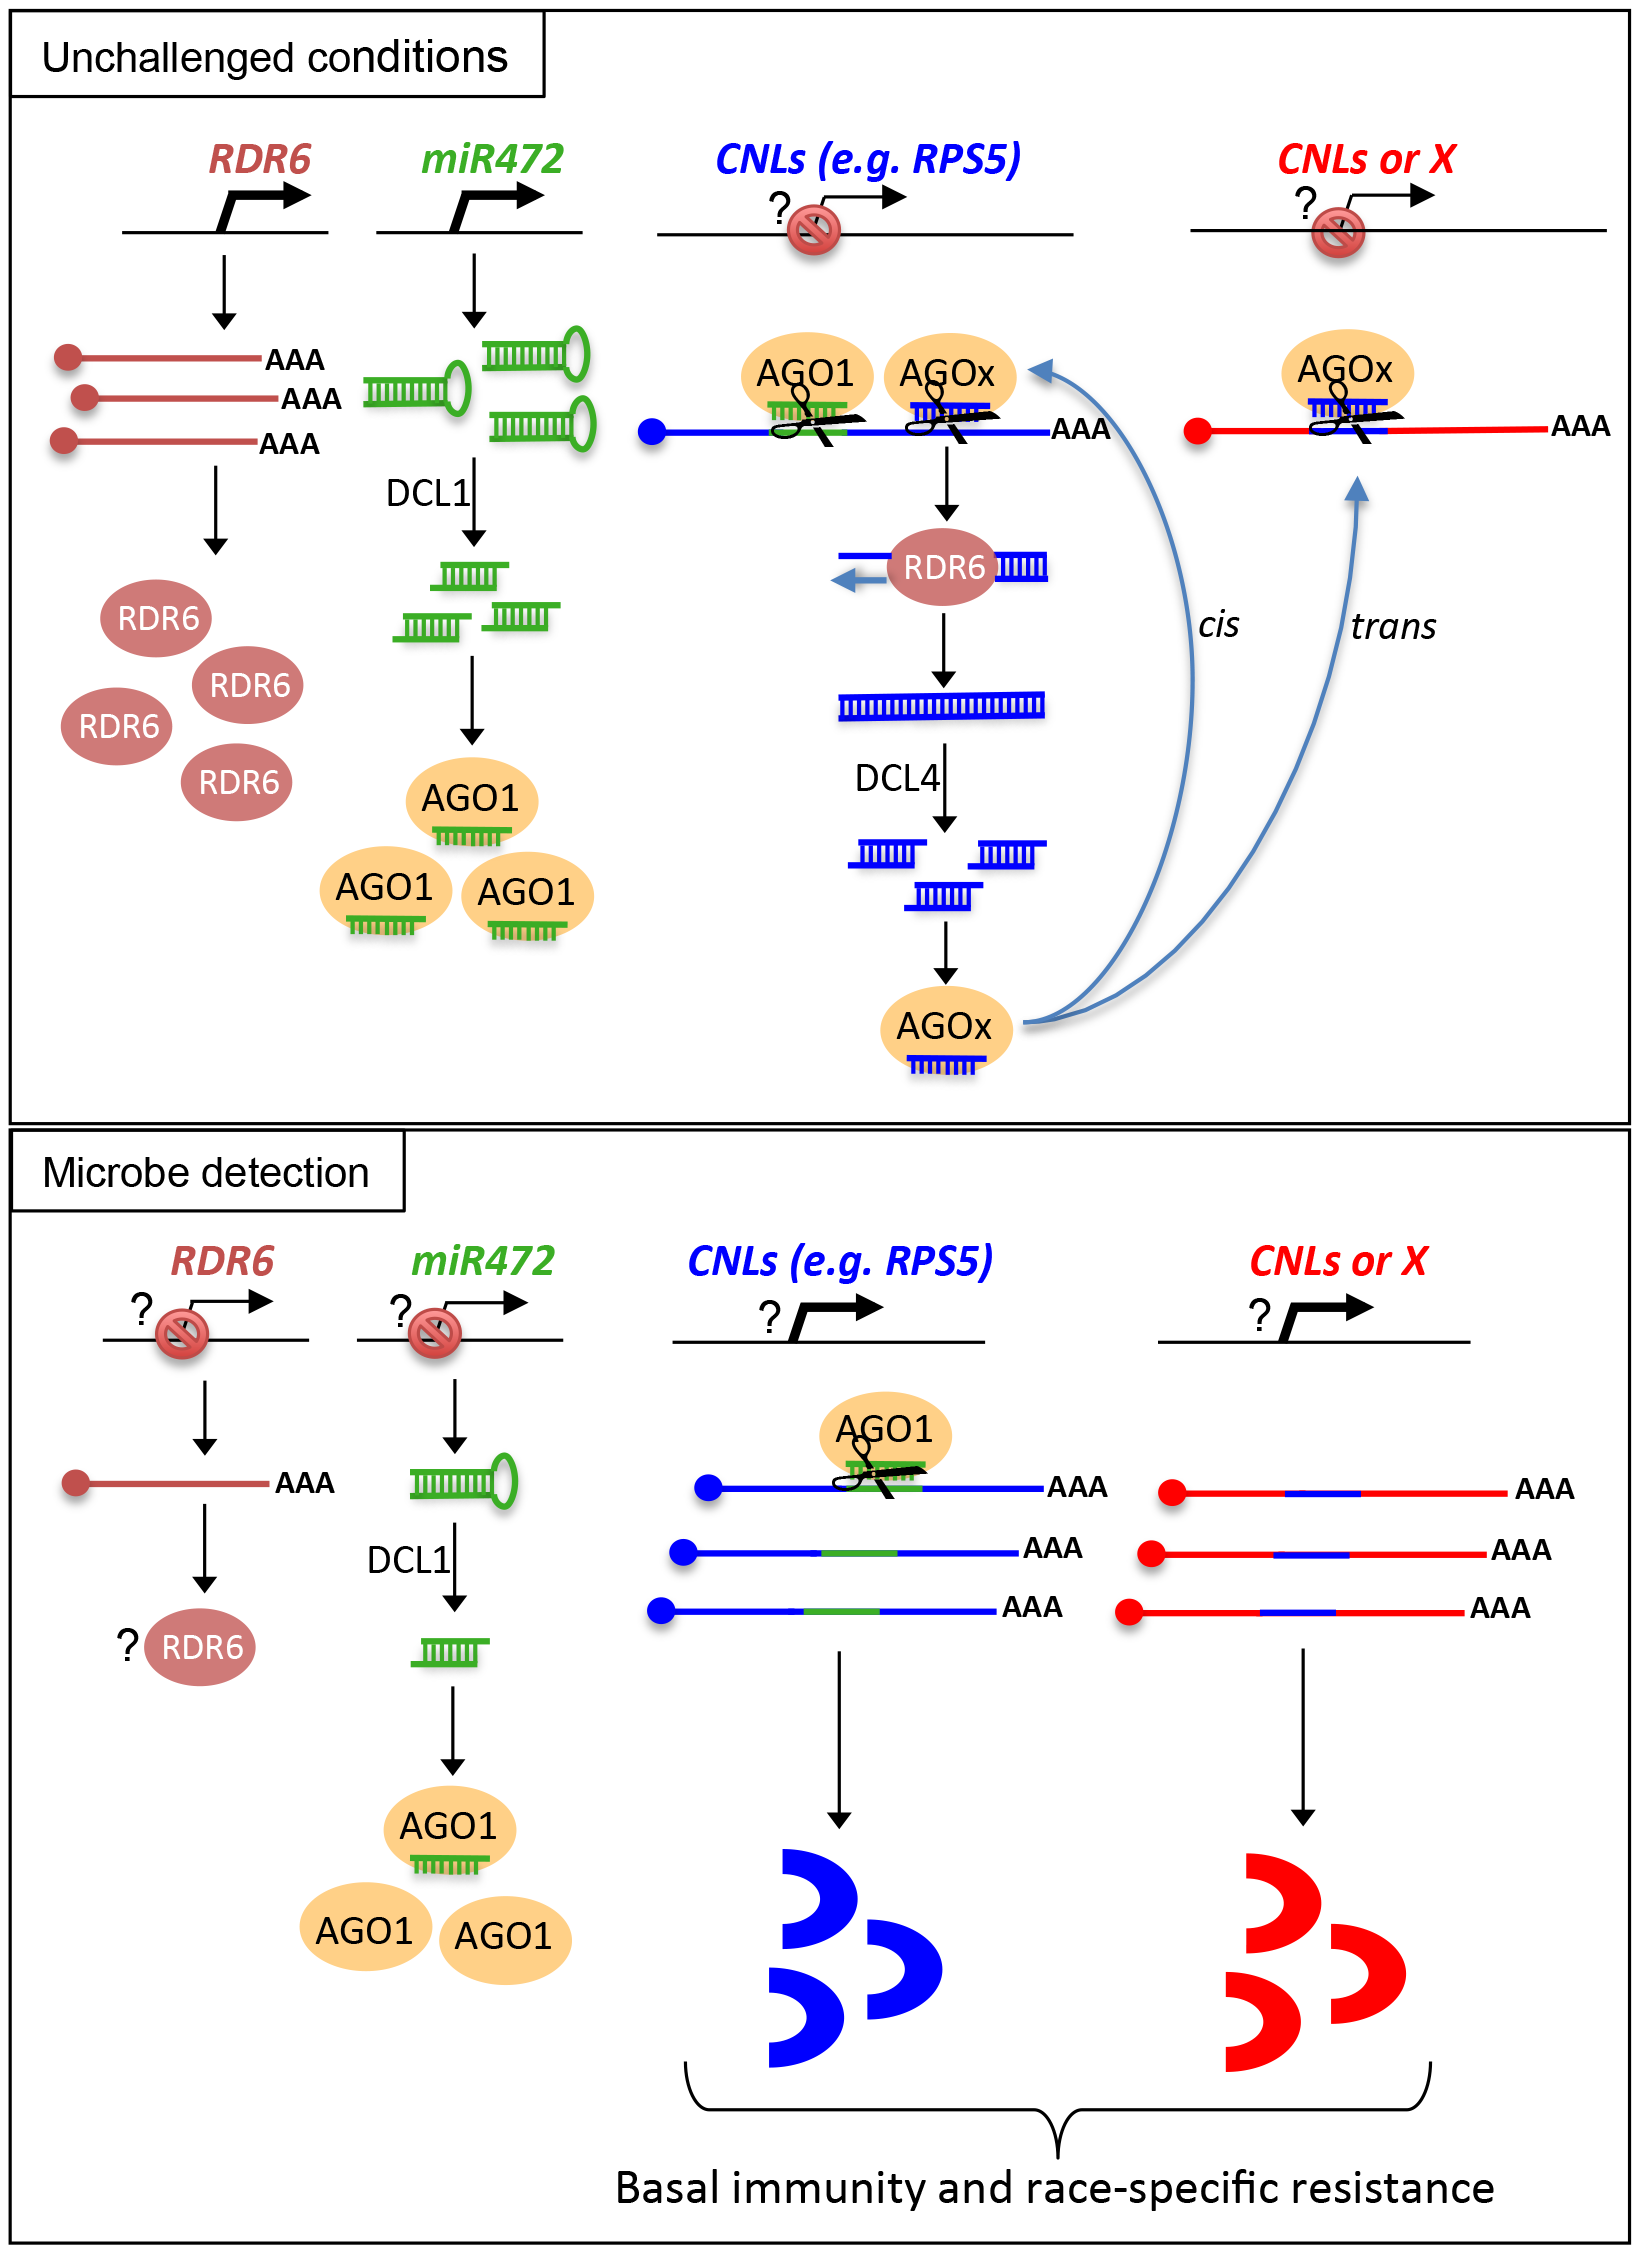 Schematic representation illustrating the relationship between miR472/RDR6 through CNL regulation during Arabidopsis immunity.